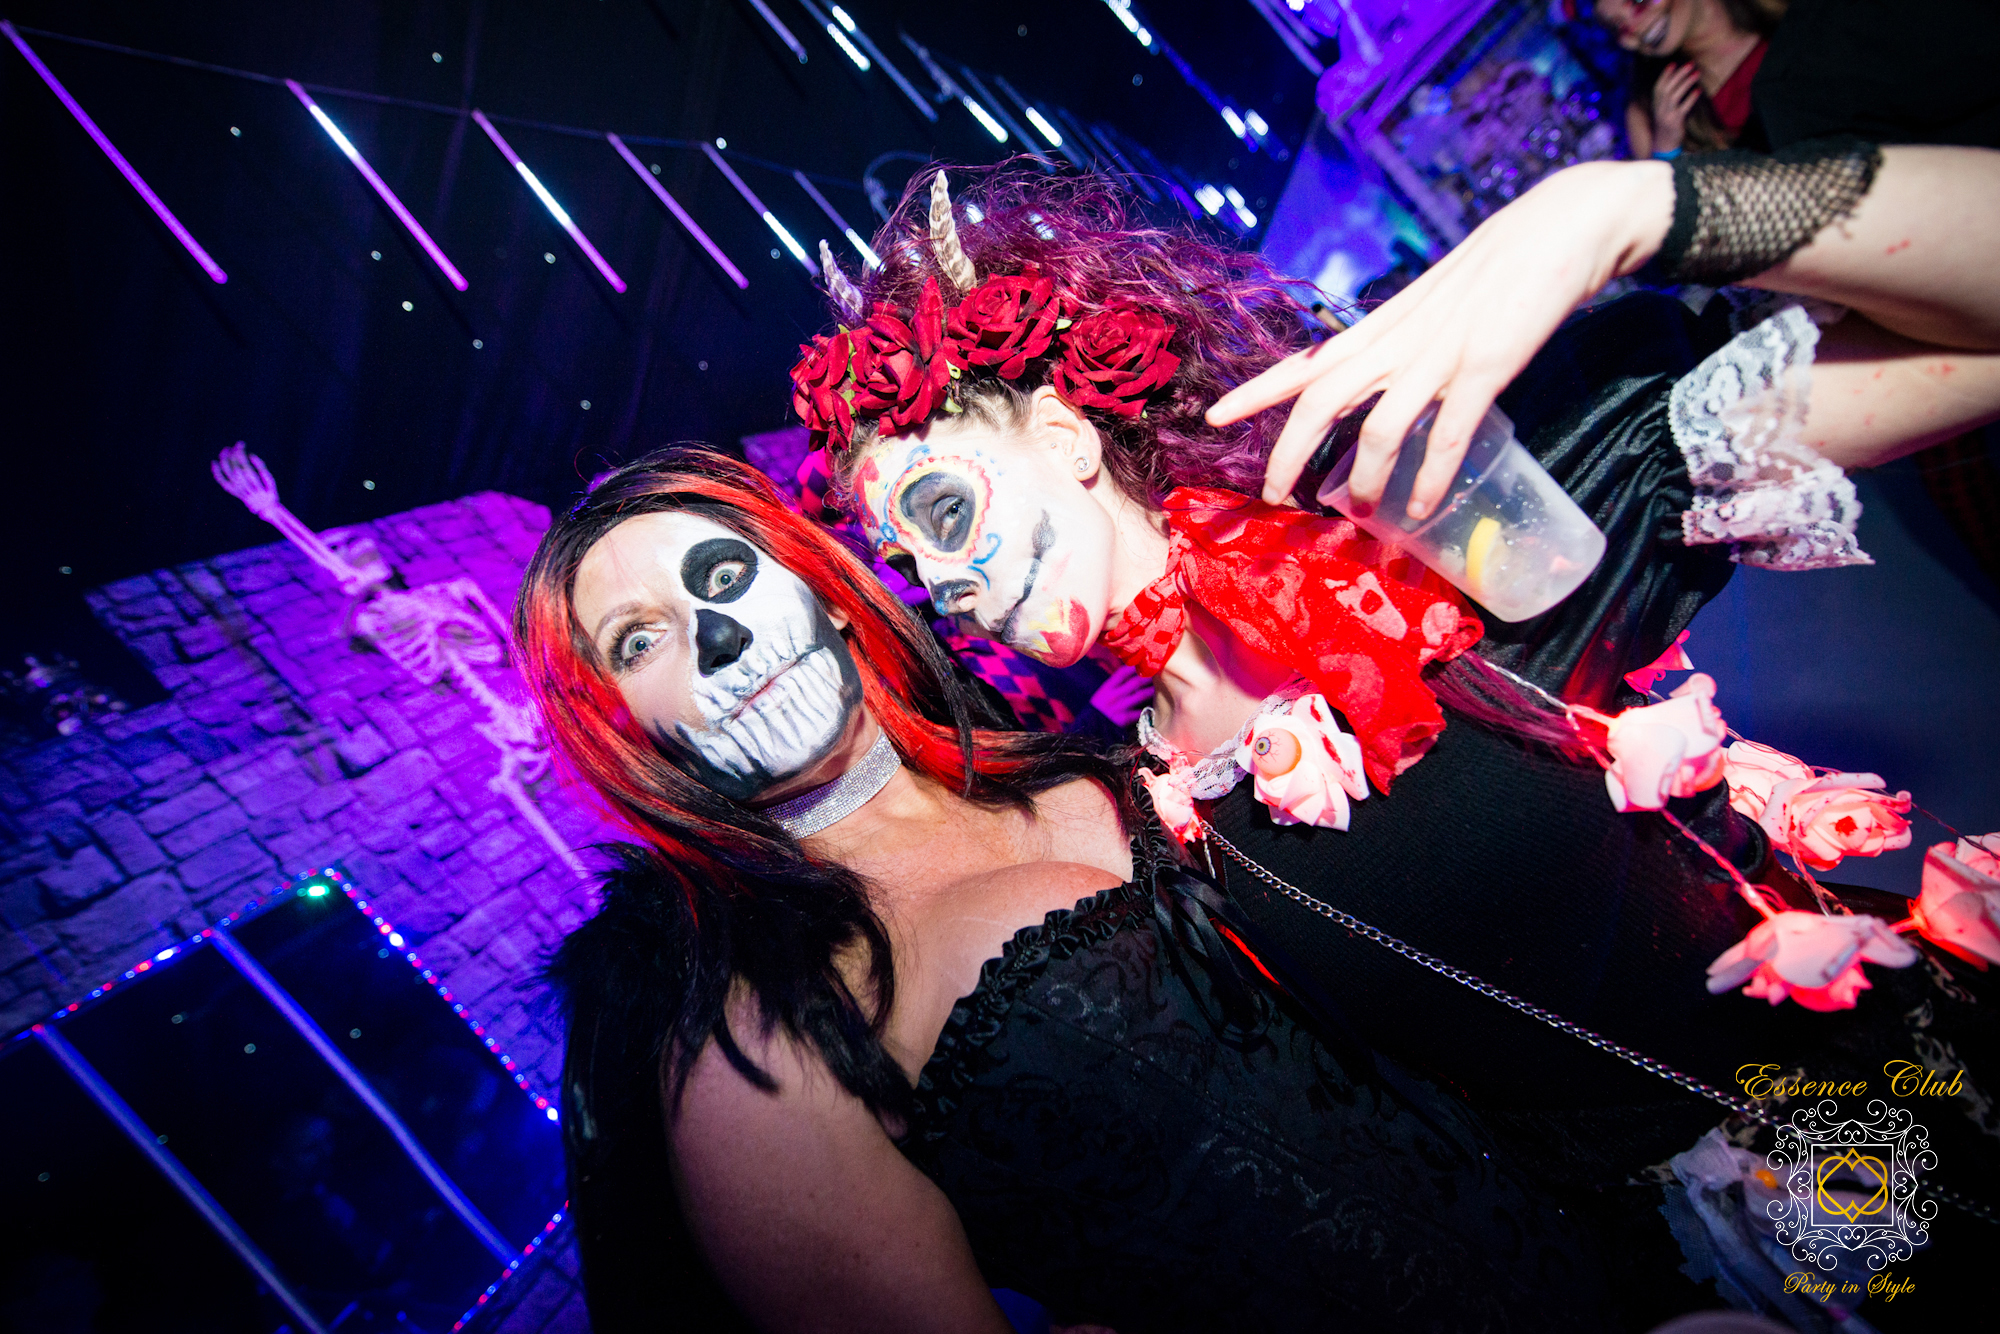 Essence Club Halloween party